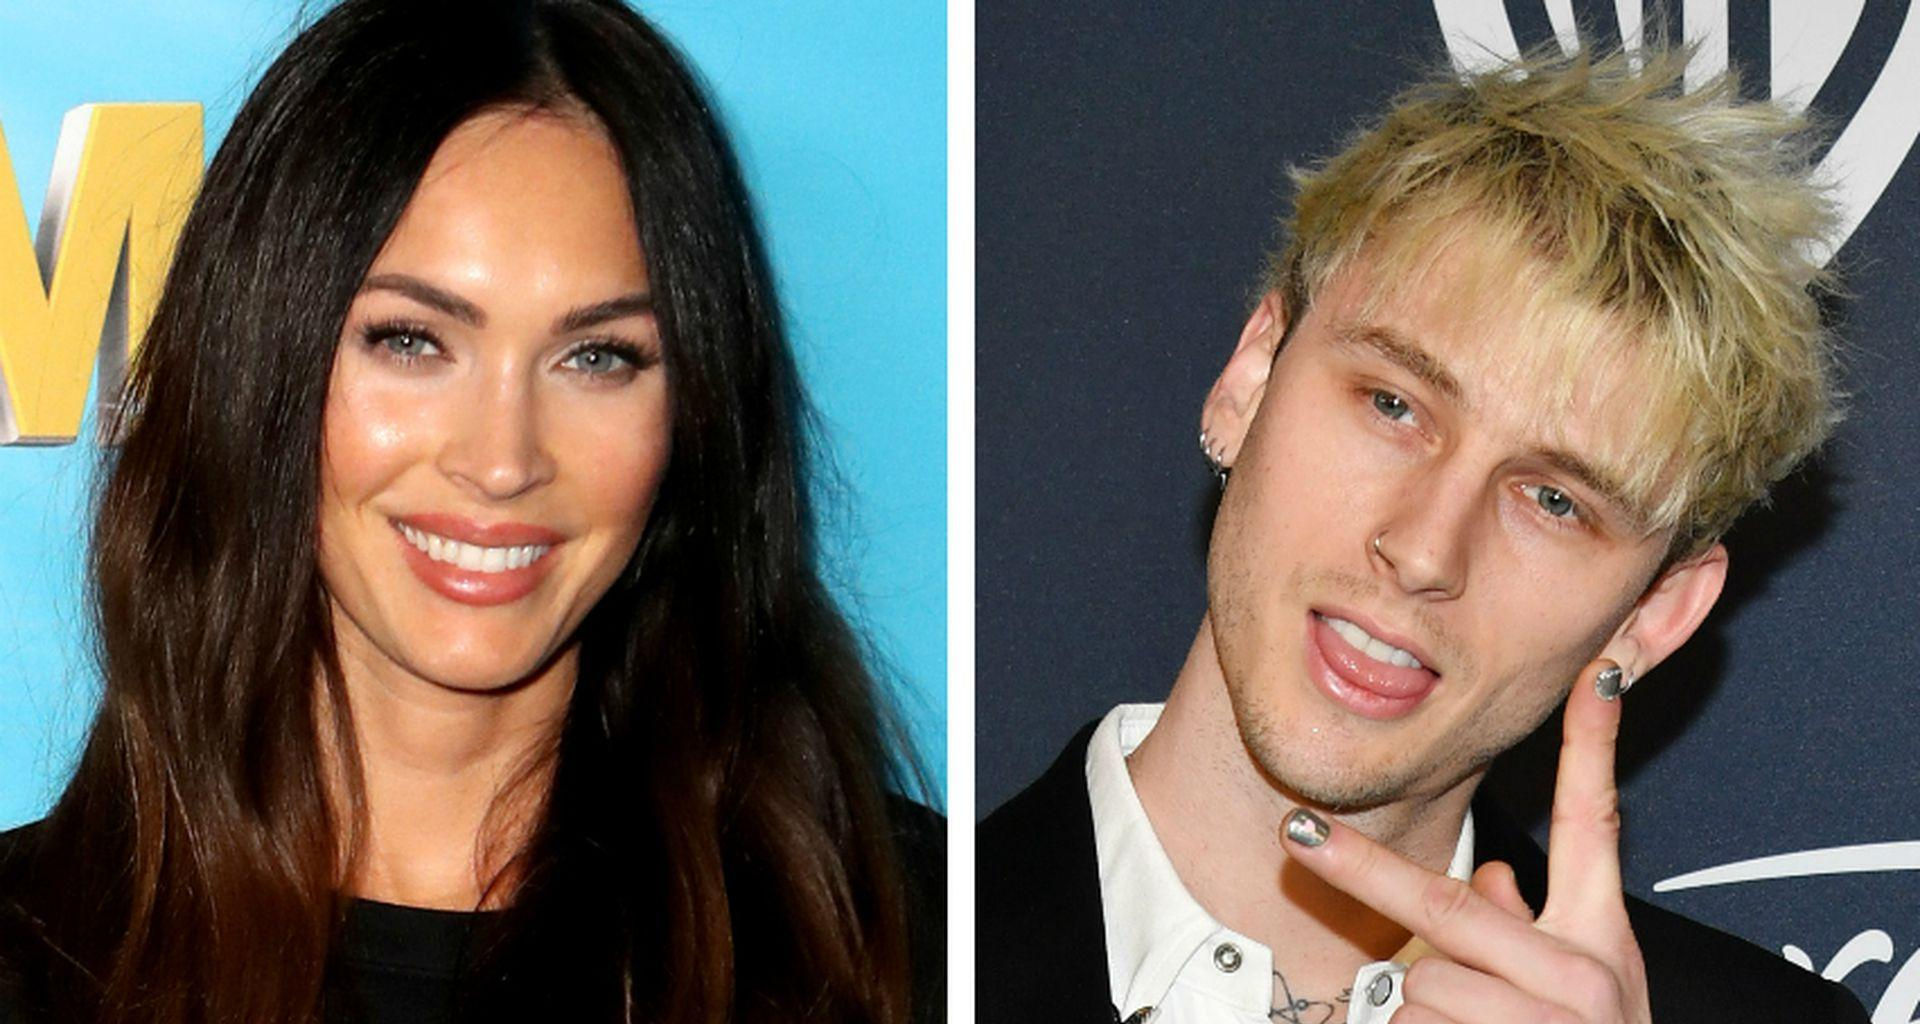 Megan Fox And Machine Gun Kelly - Here's Why They're Not Planning On Meeting Each Other's Kids Anytime Soon!